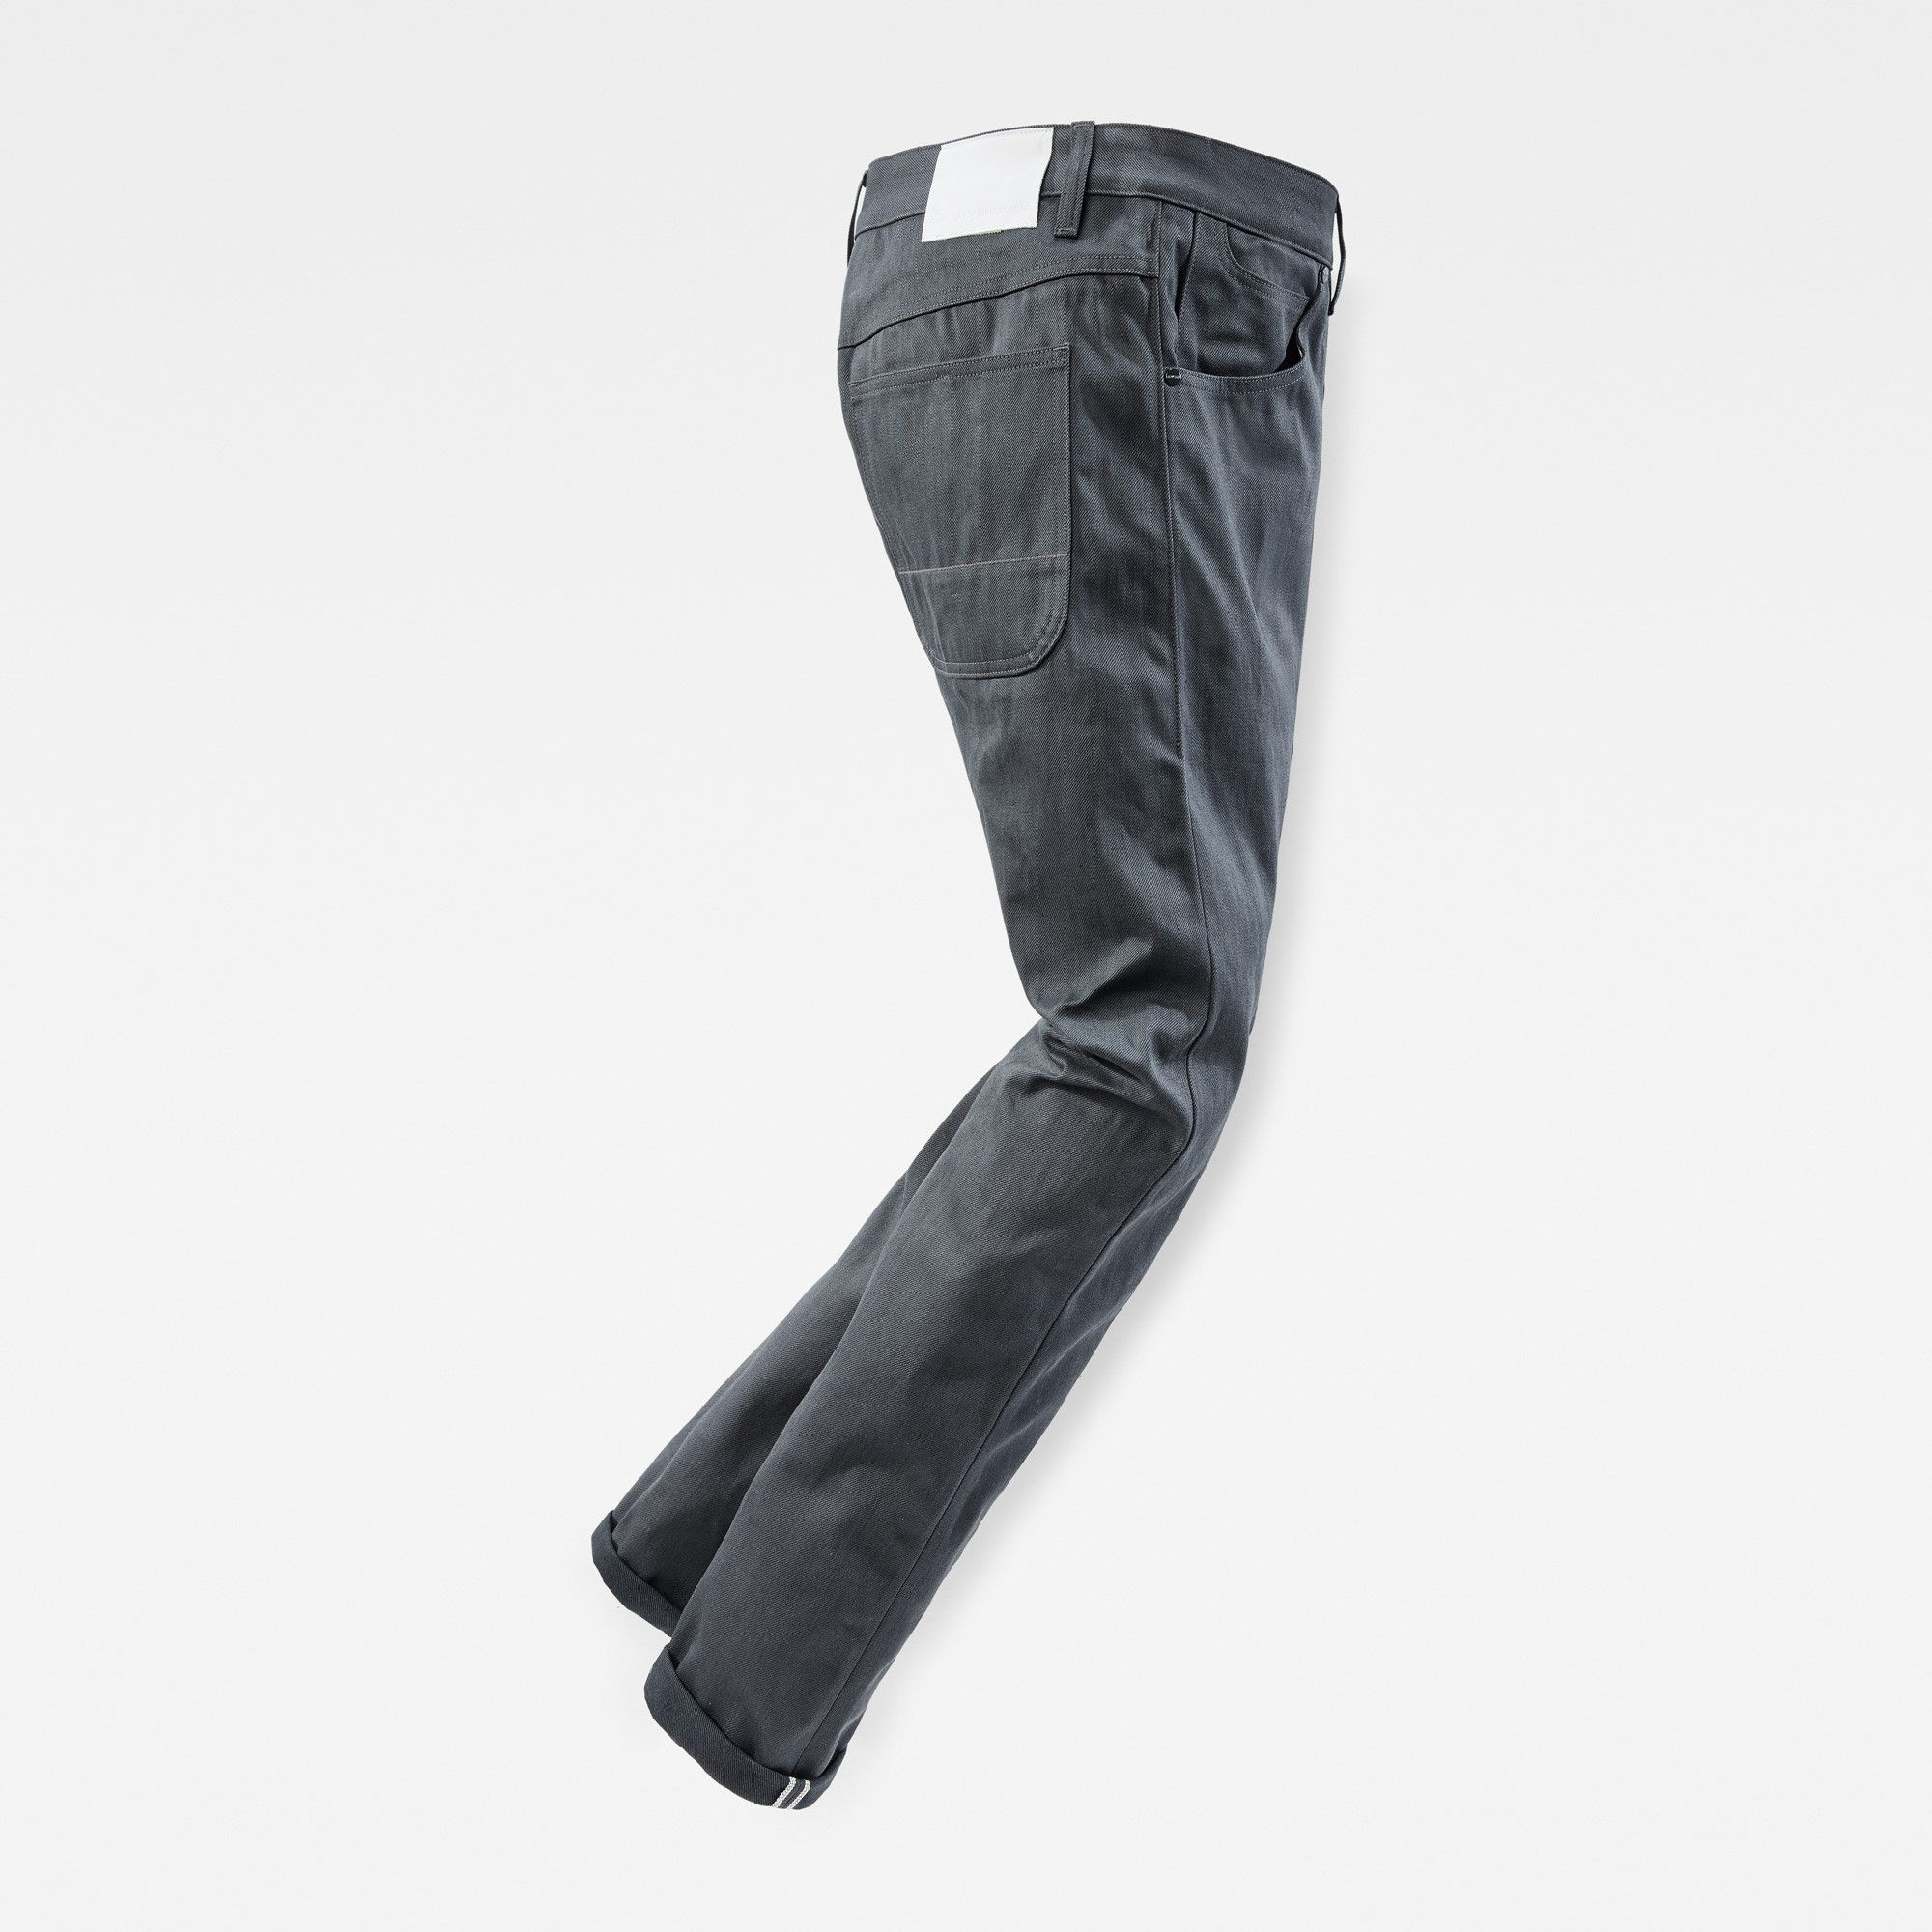 G-Star RAW | Men | Marc Newson | Marc Newson 5-pocket Slim Jeans , Pedal Grey